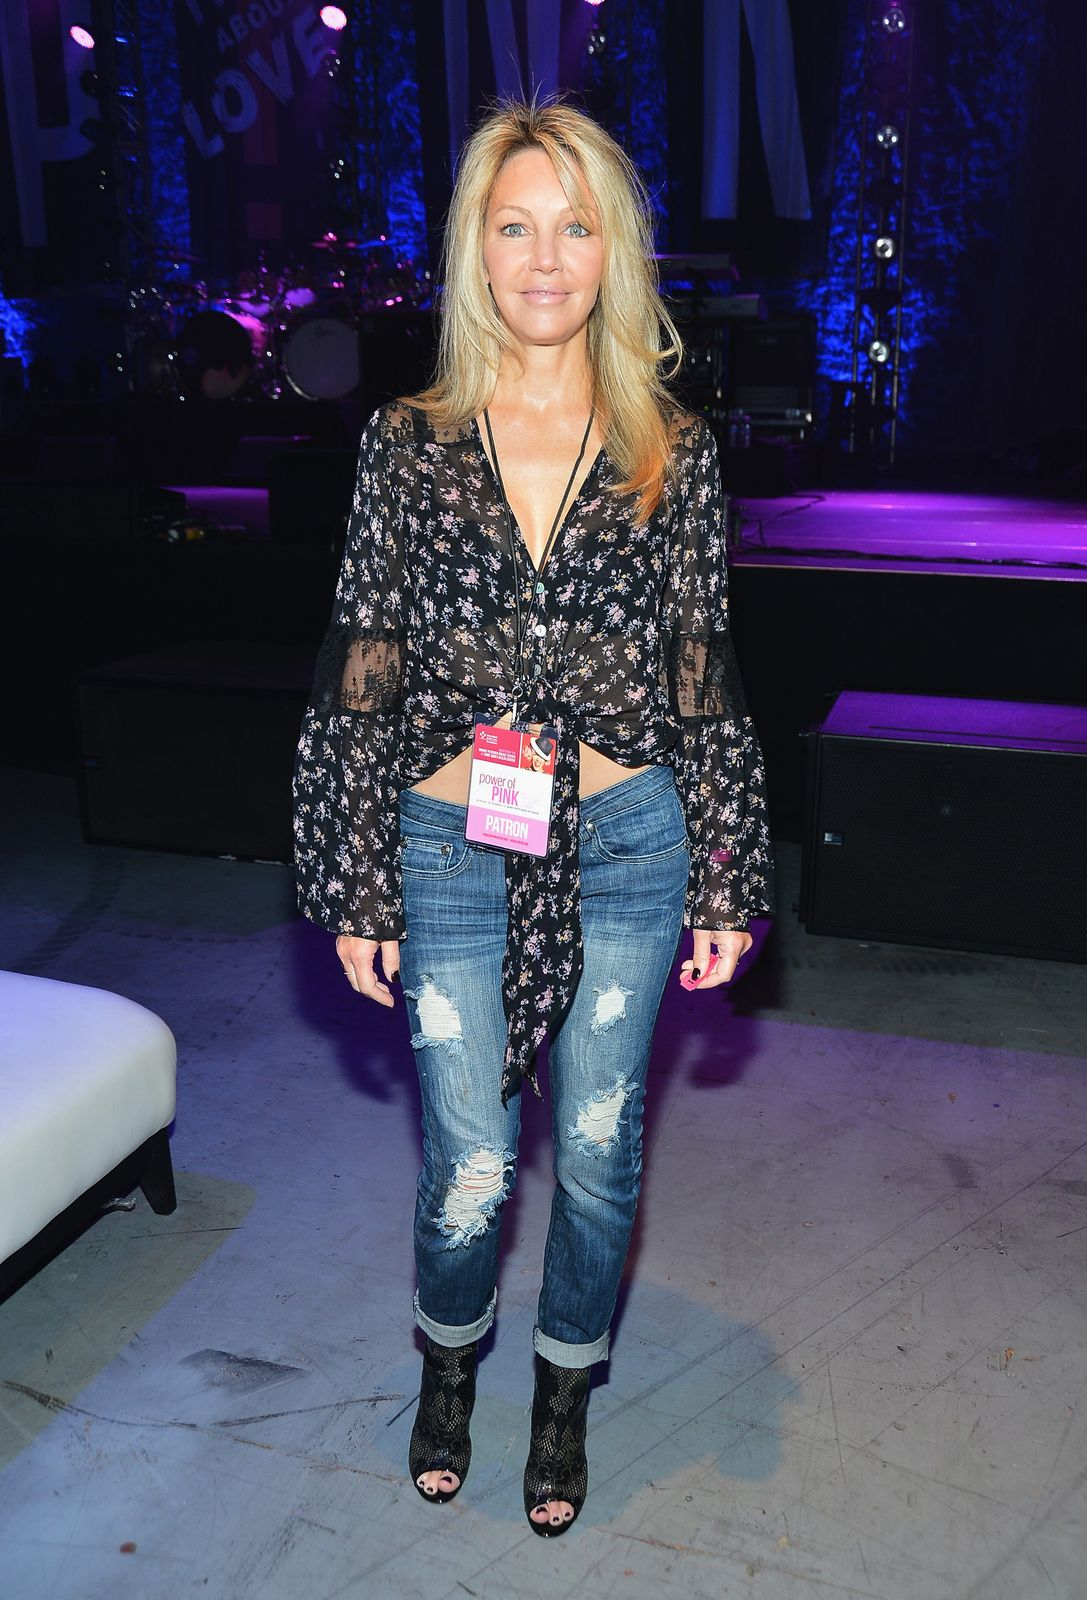 Heather Locklear atthe St. John's Health Center's Power of Pink benefiting The Margie Petersen Breast Centeron November 12, 2012, in Los Angeles, California | Photo:Frazer Harrison/Getty Images